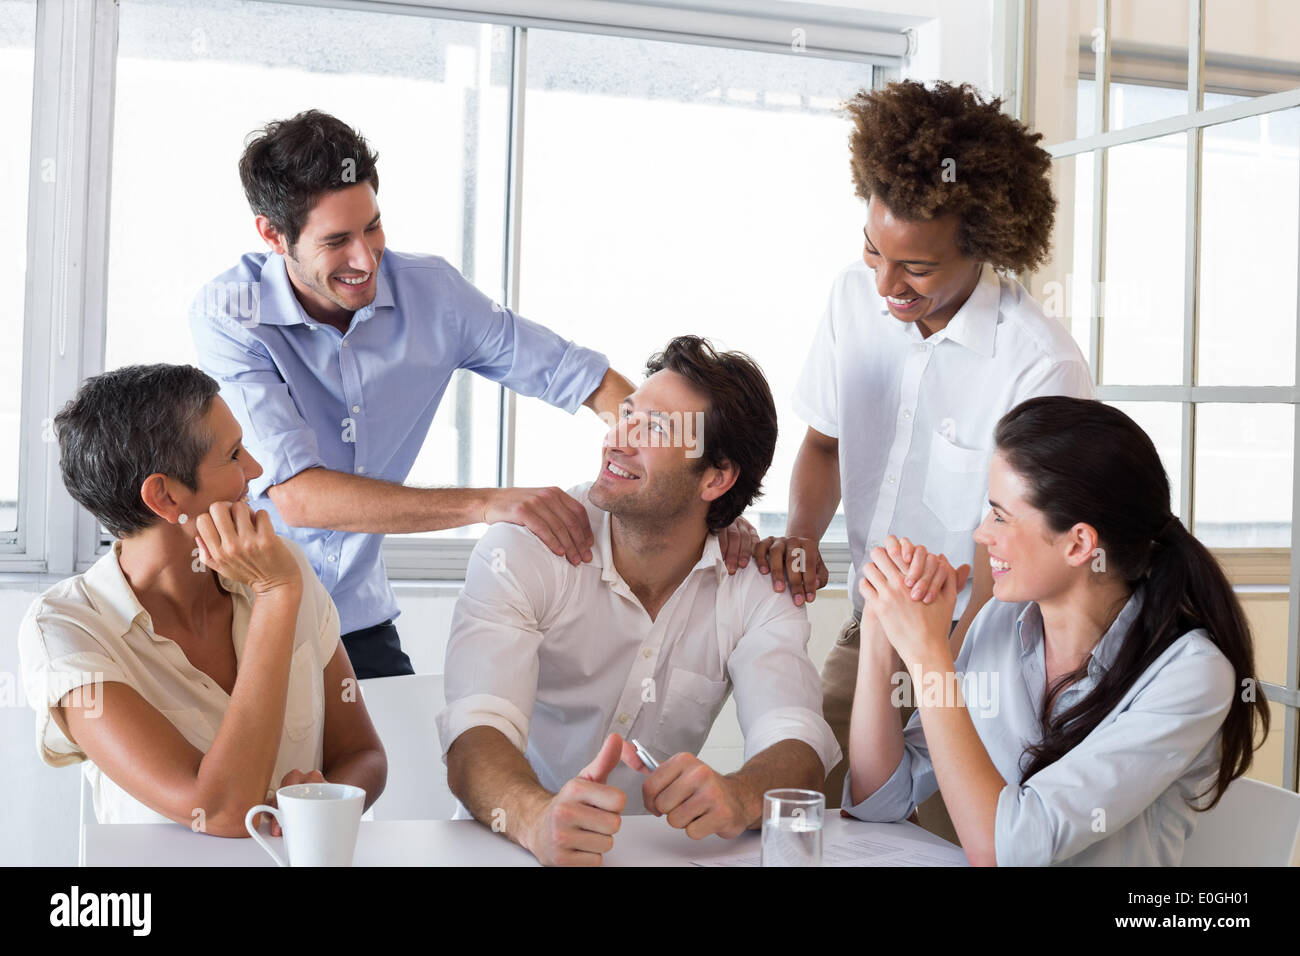 Attractive businessman praising coworker - Stock Image